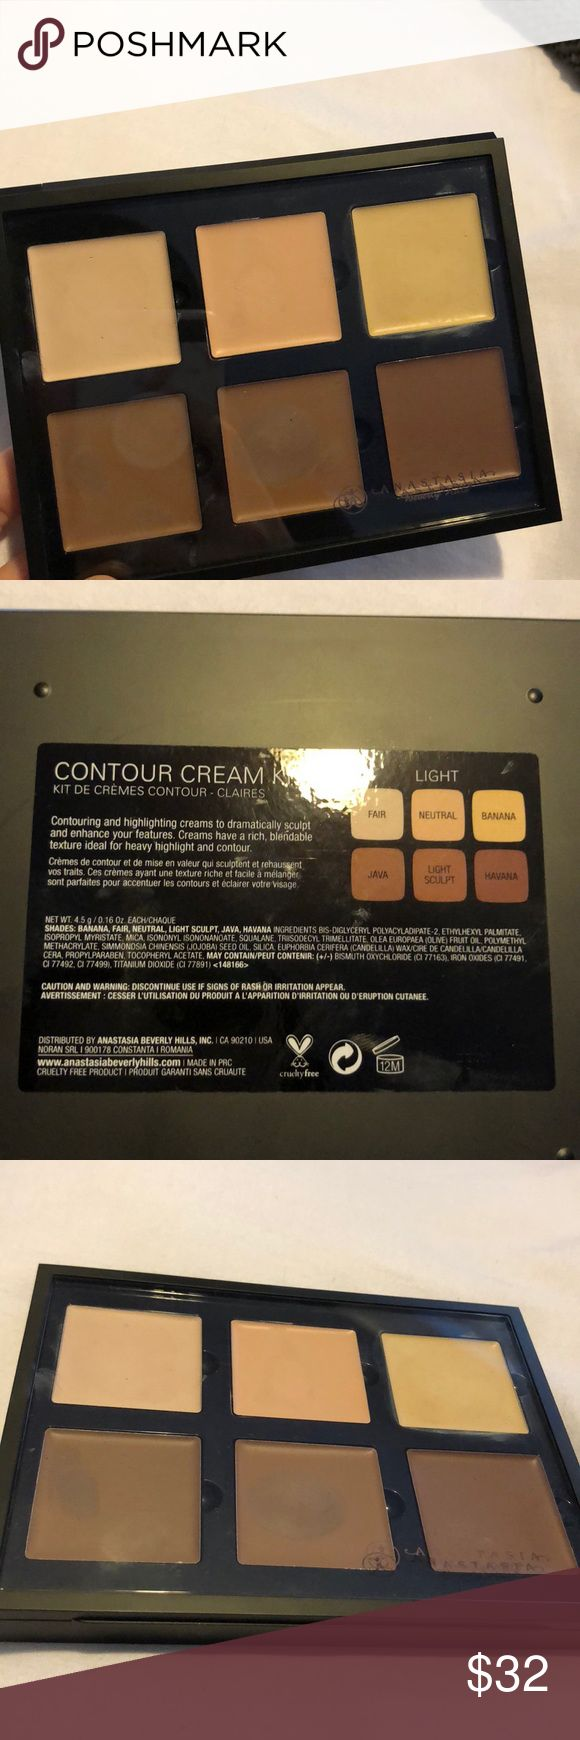 Anastasia Beverly Hills Cream Contour Kit (LIGHT) Lightly used cream contour kit from ABH   Probably 2 months old! Super great condition   Originally purchased on Sephora's online website   Price negotiable, reasonable offers only please :)   Bundle for discount! Comes with free gift during the holidays Anastasia Beverly Hills Makeup